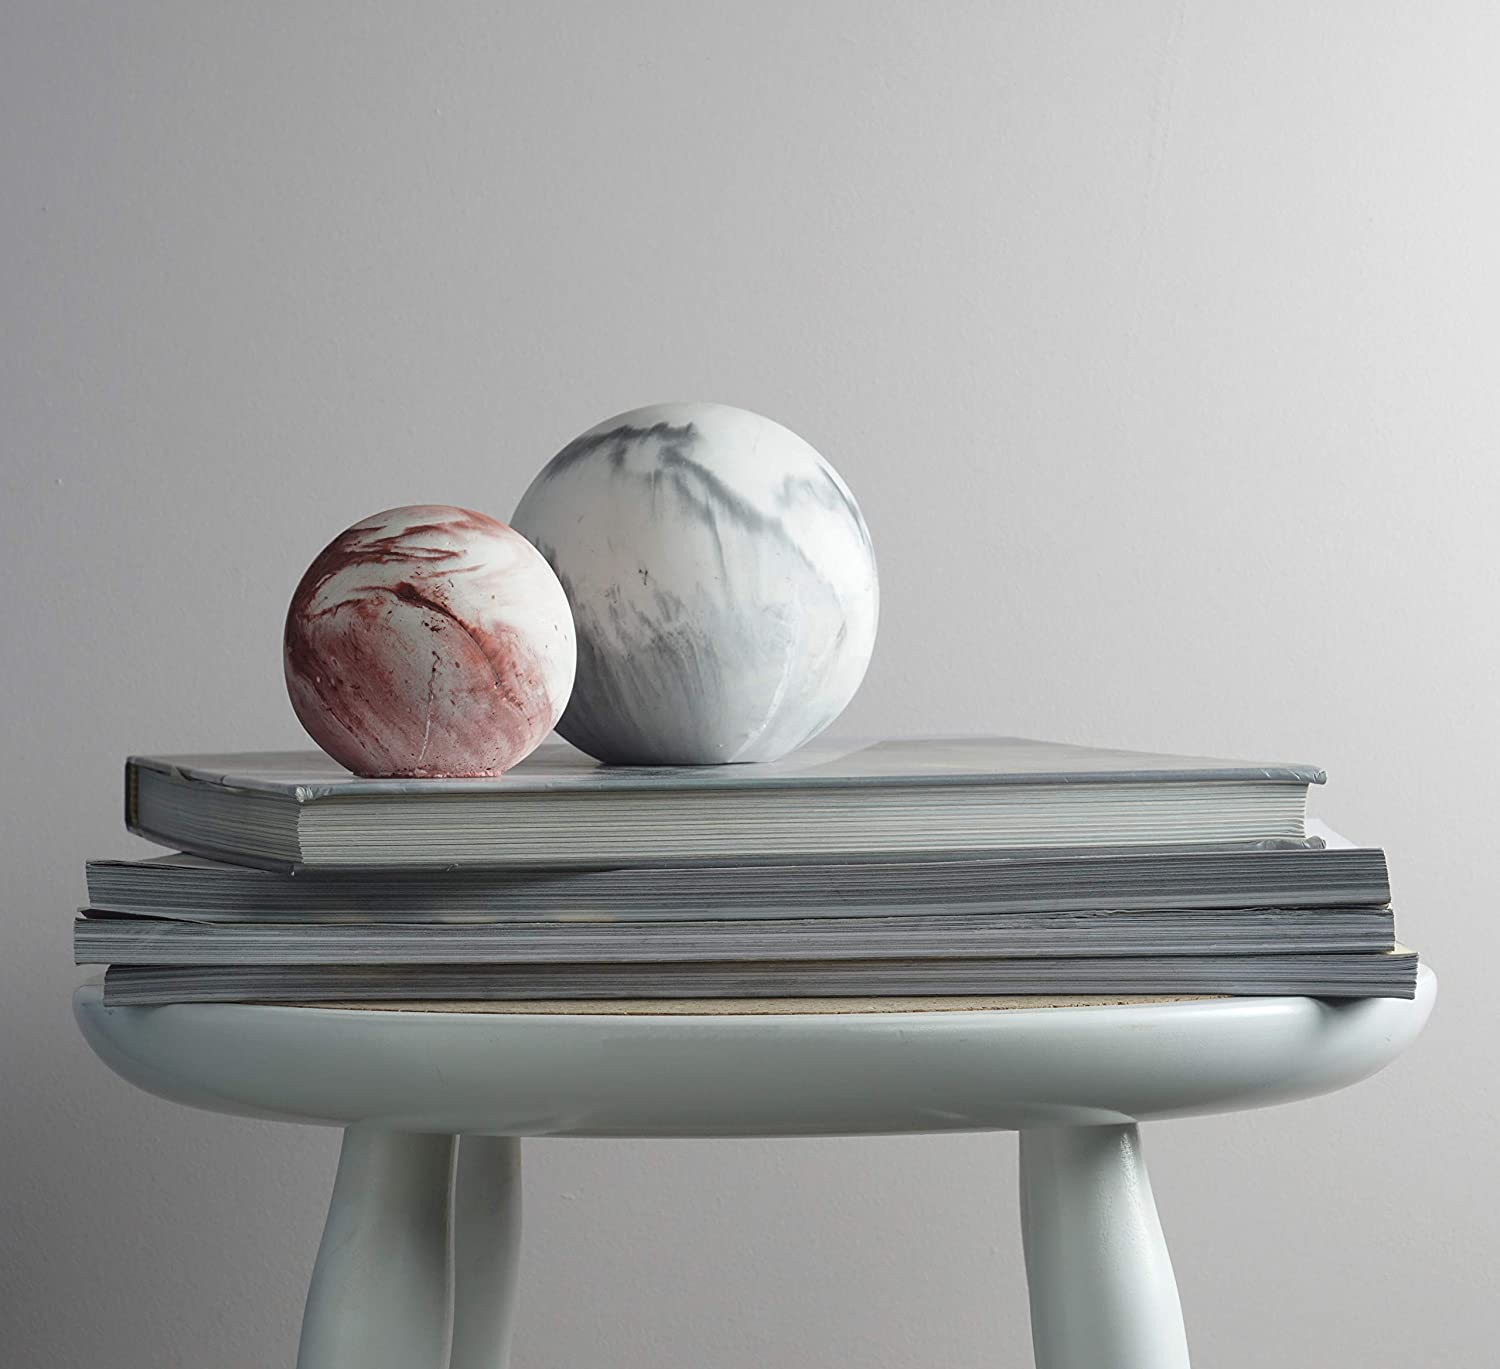 Sizes Large and Small MOXON Desk Planet Paperweight by Korridor Design in Grey Red Small